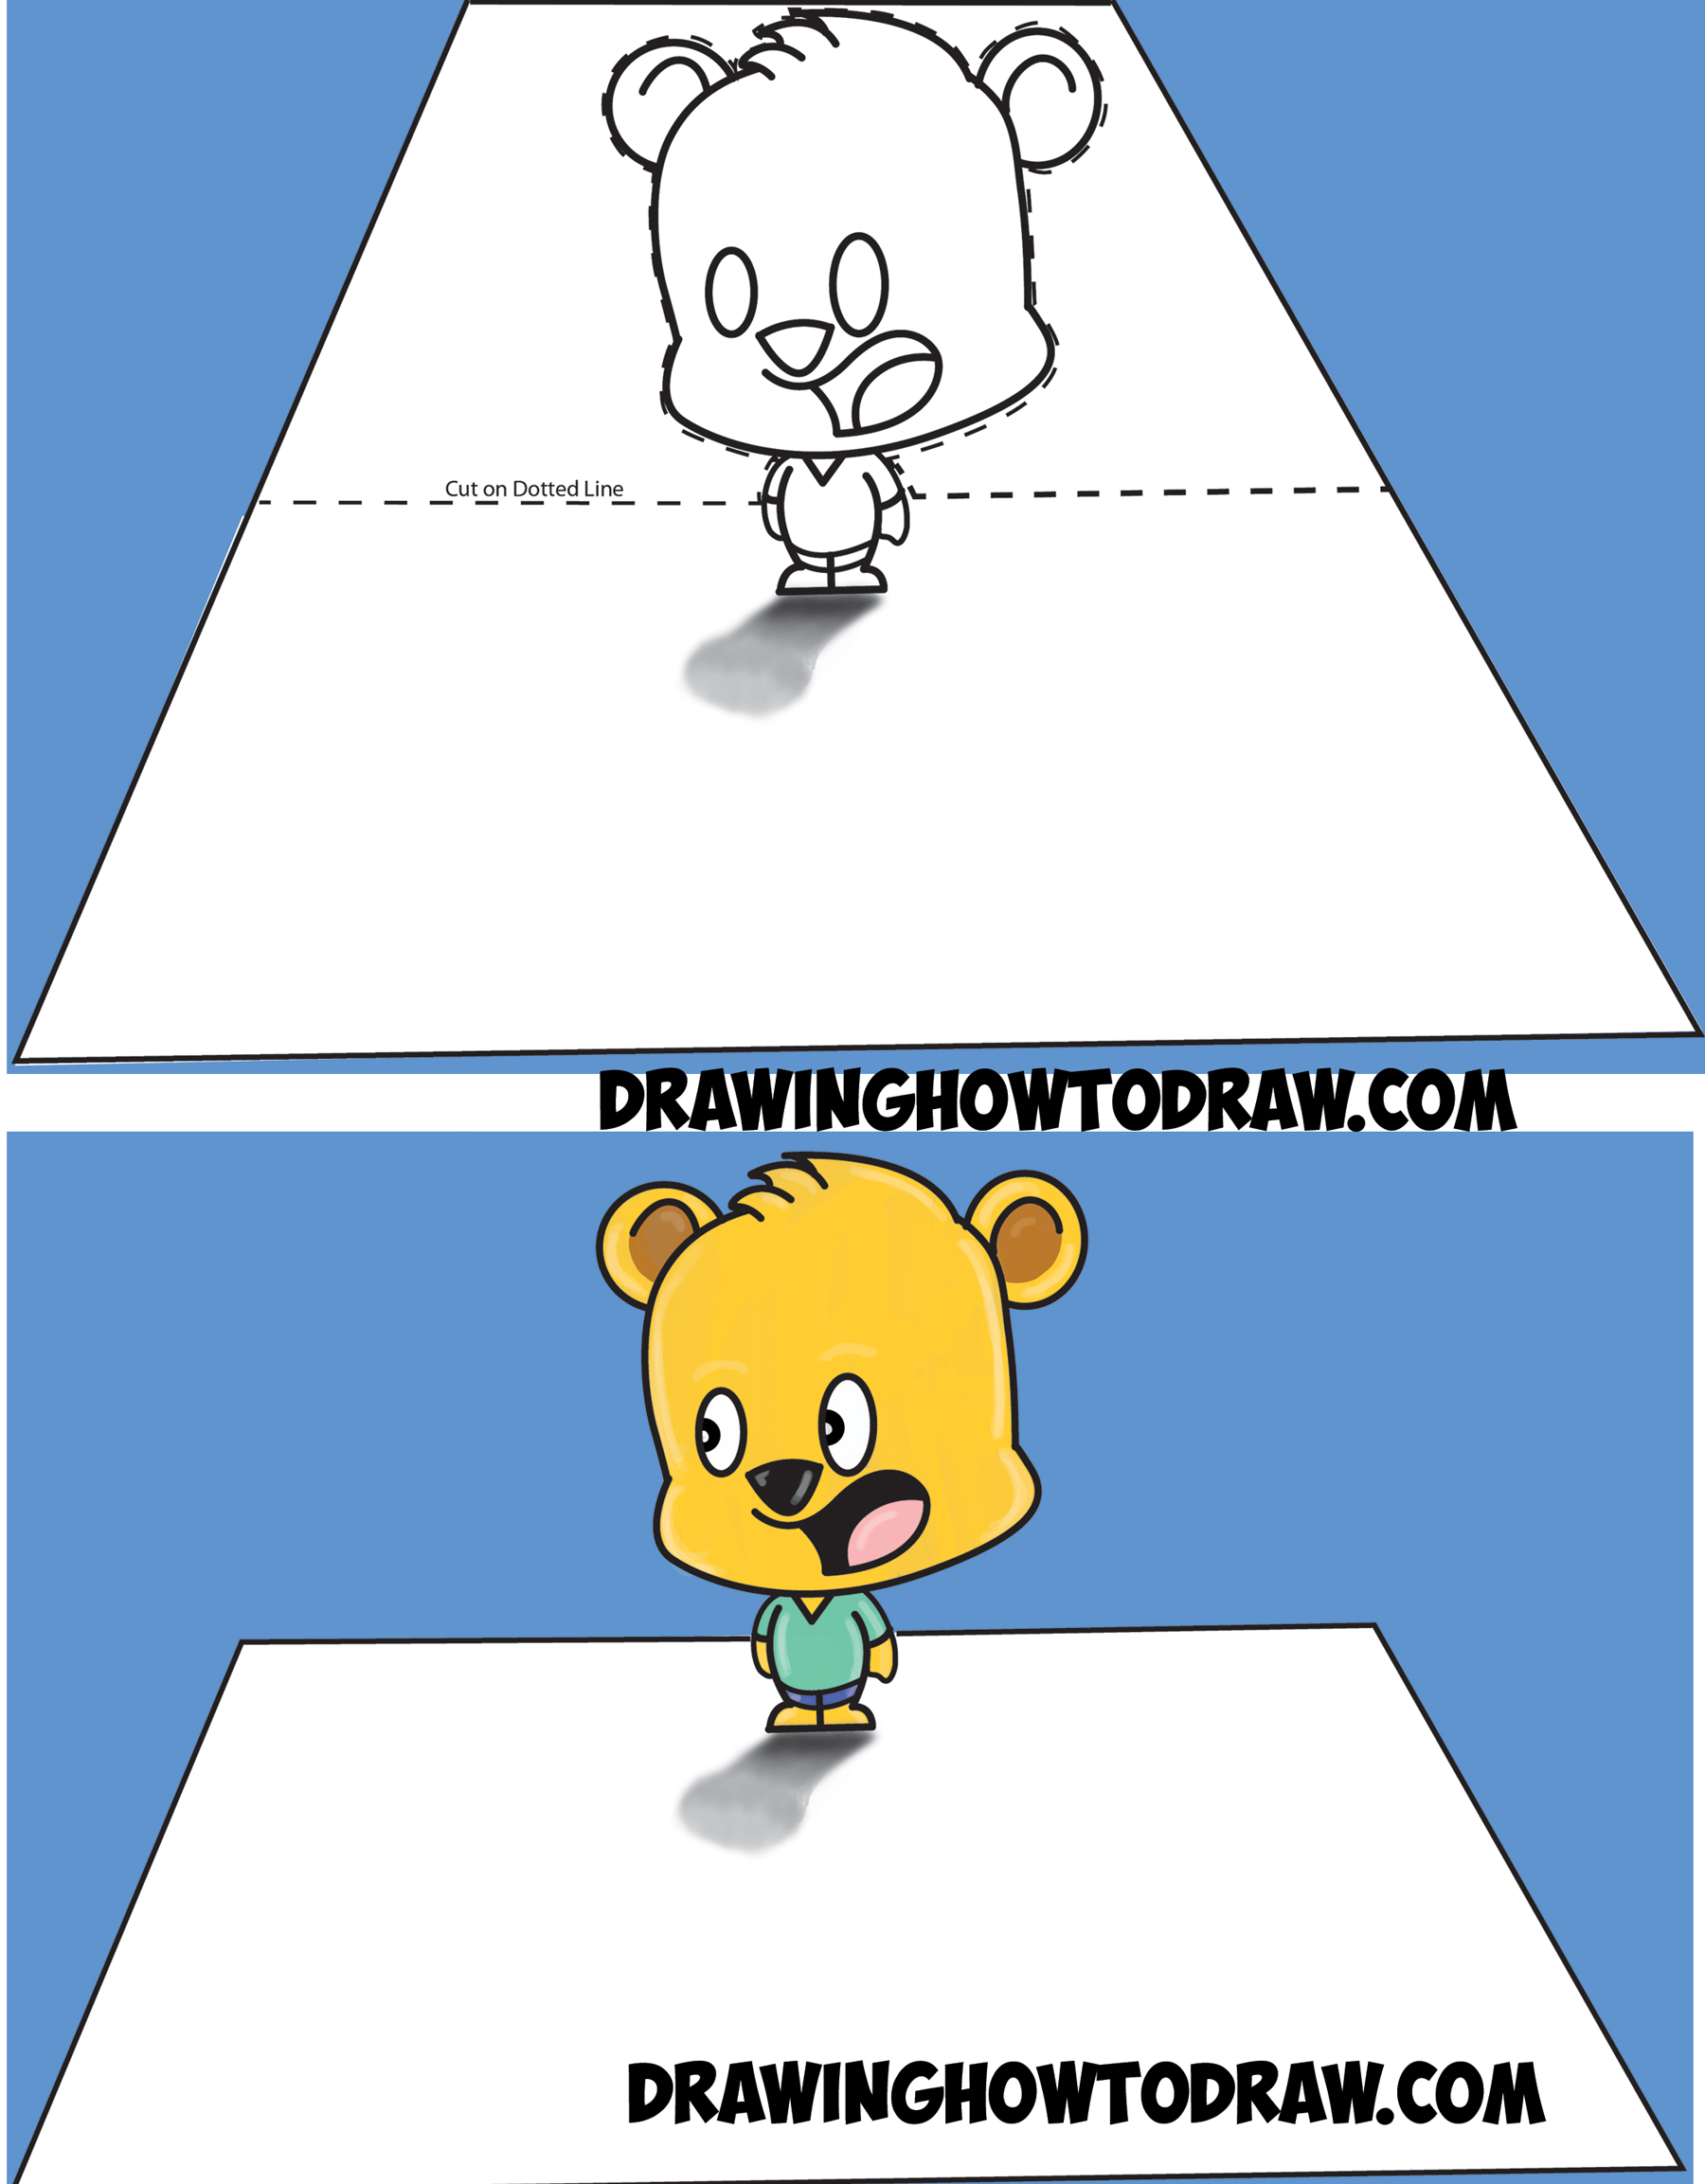 How to draw 3d cartoon bear standing on top of piece of paper optical illusion easy step by step drawing tutorial for kids and beginners